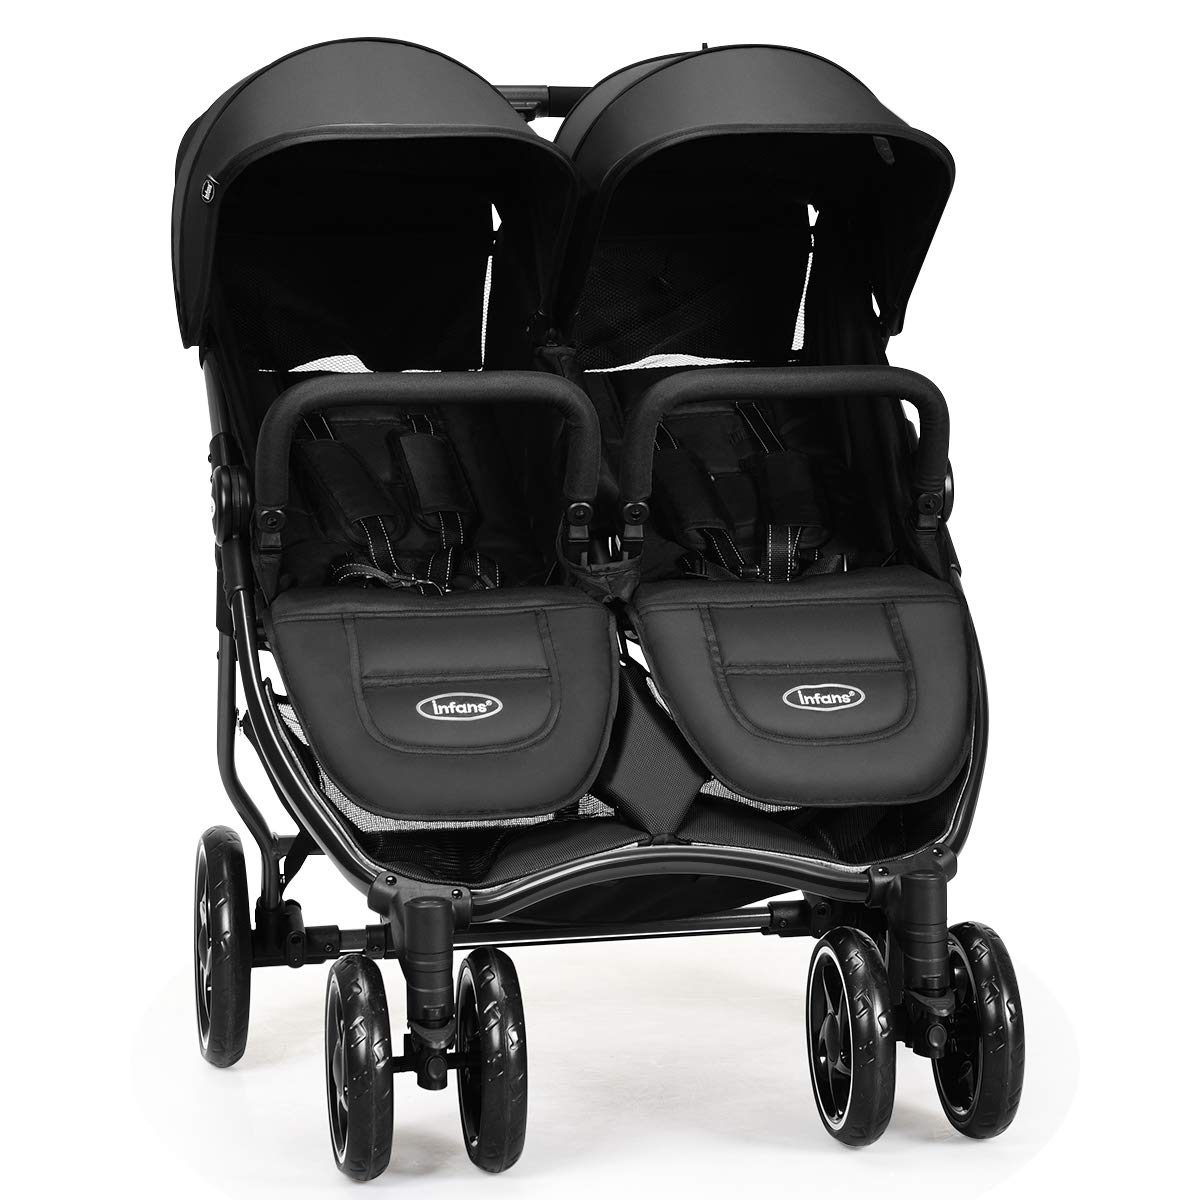 INFANS Double Stroller, Lightweight Easy Folding Duo Baby Stroller with Side by Side Twin Seats, Night Reflective 5-Point Safety Harness, Suitable for 6 Months to 3 Years Black